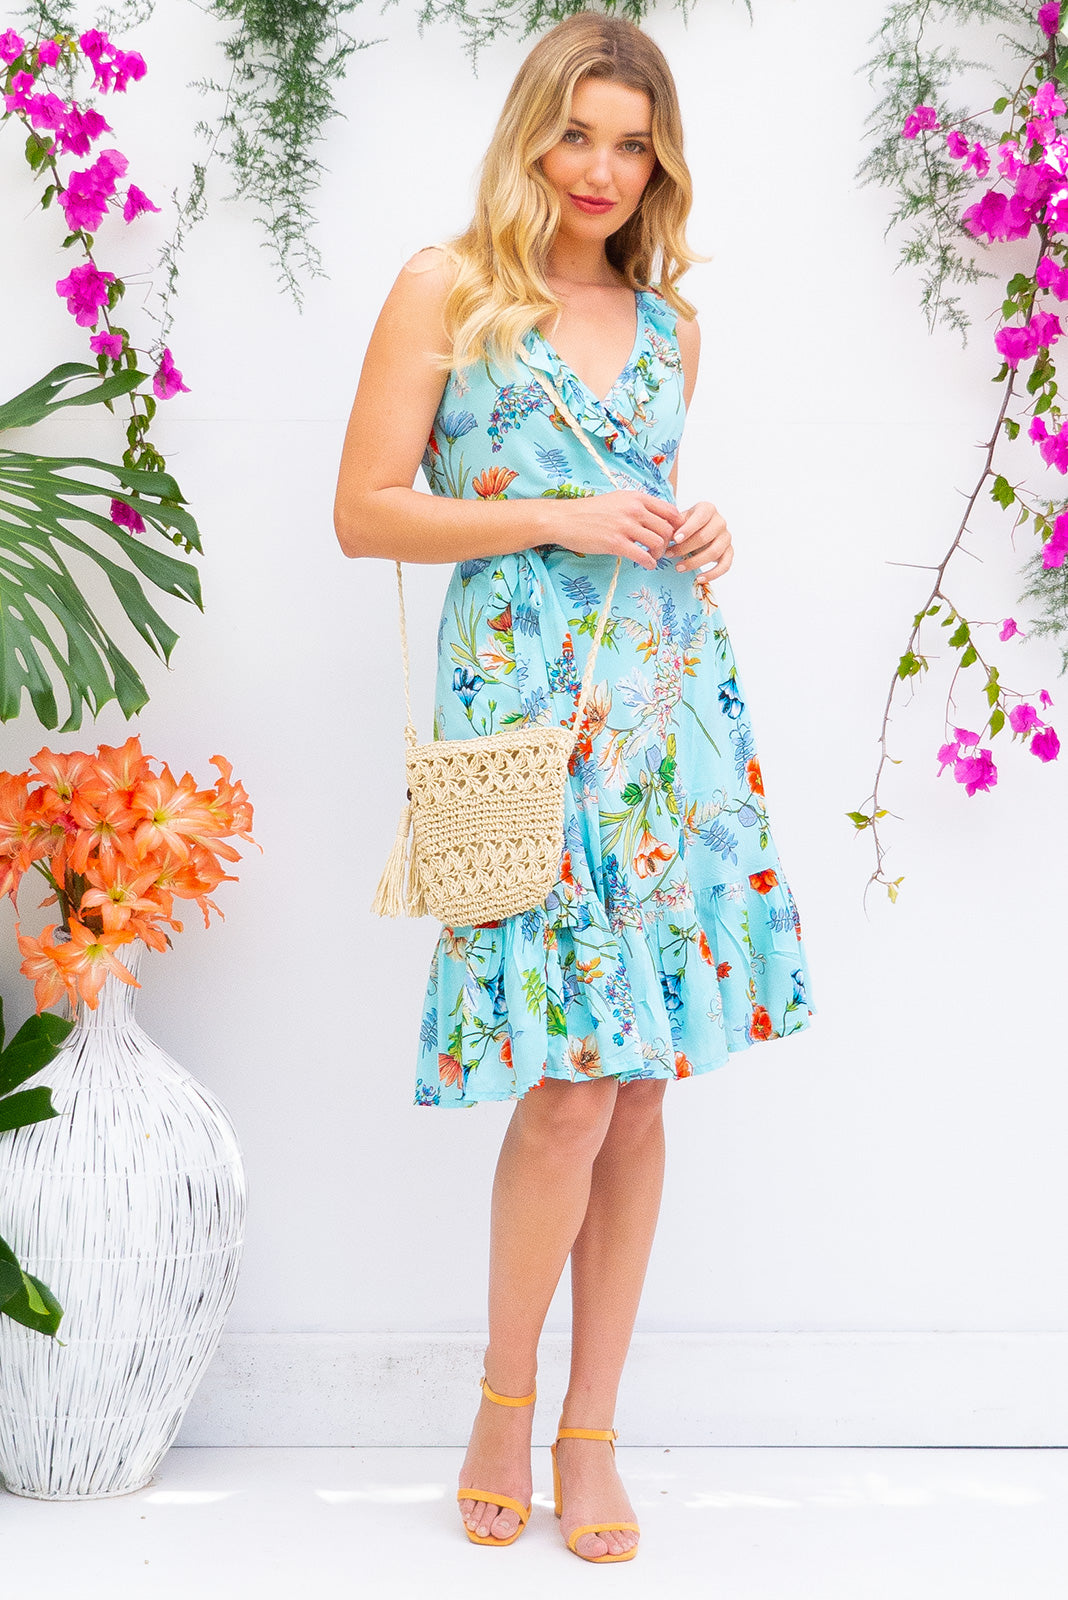 Paloma Aquamarine Wrap Dress features a flattering wrap around shape, sleeveless bodice with a frill and comes in bright aquamarine blue floral print woven rayon